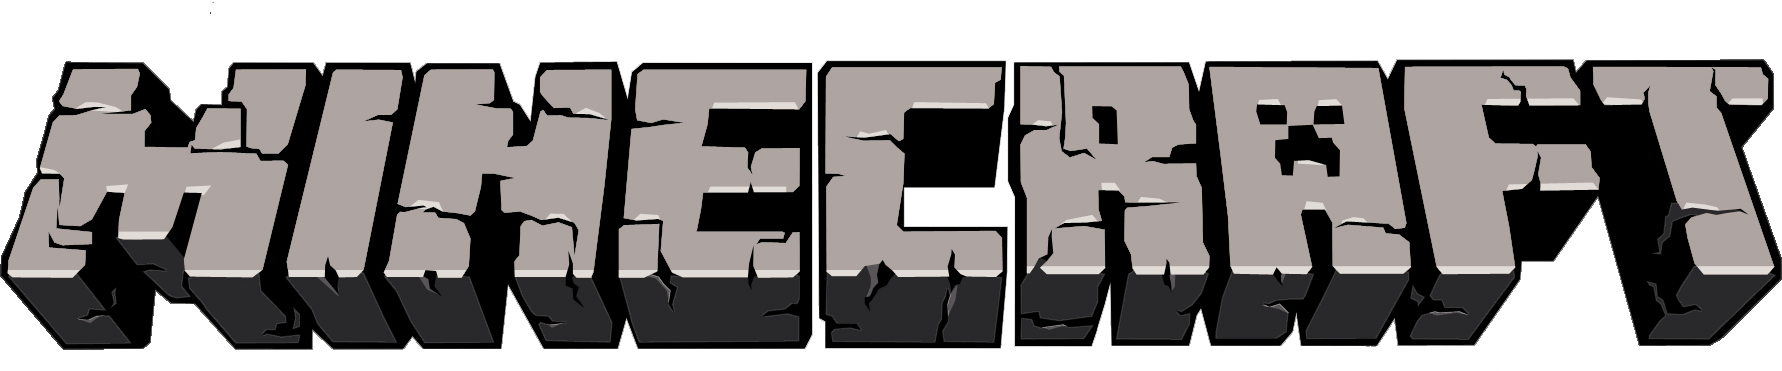 Logo Minecraft transparent PNG.